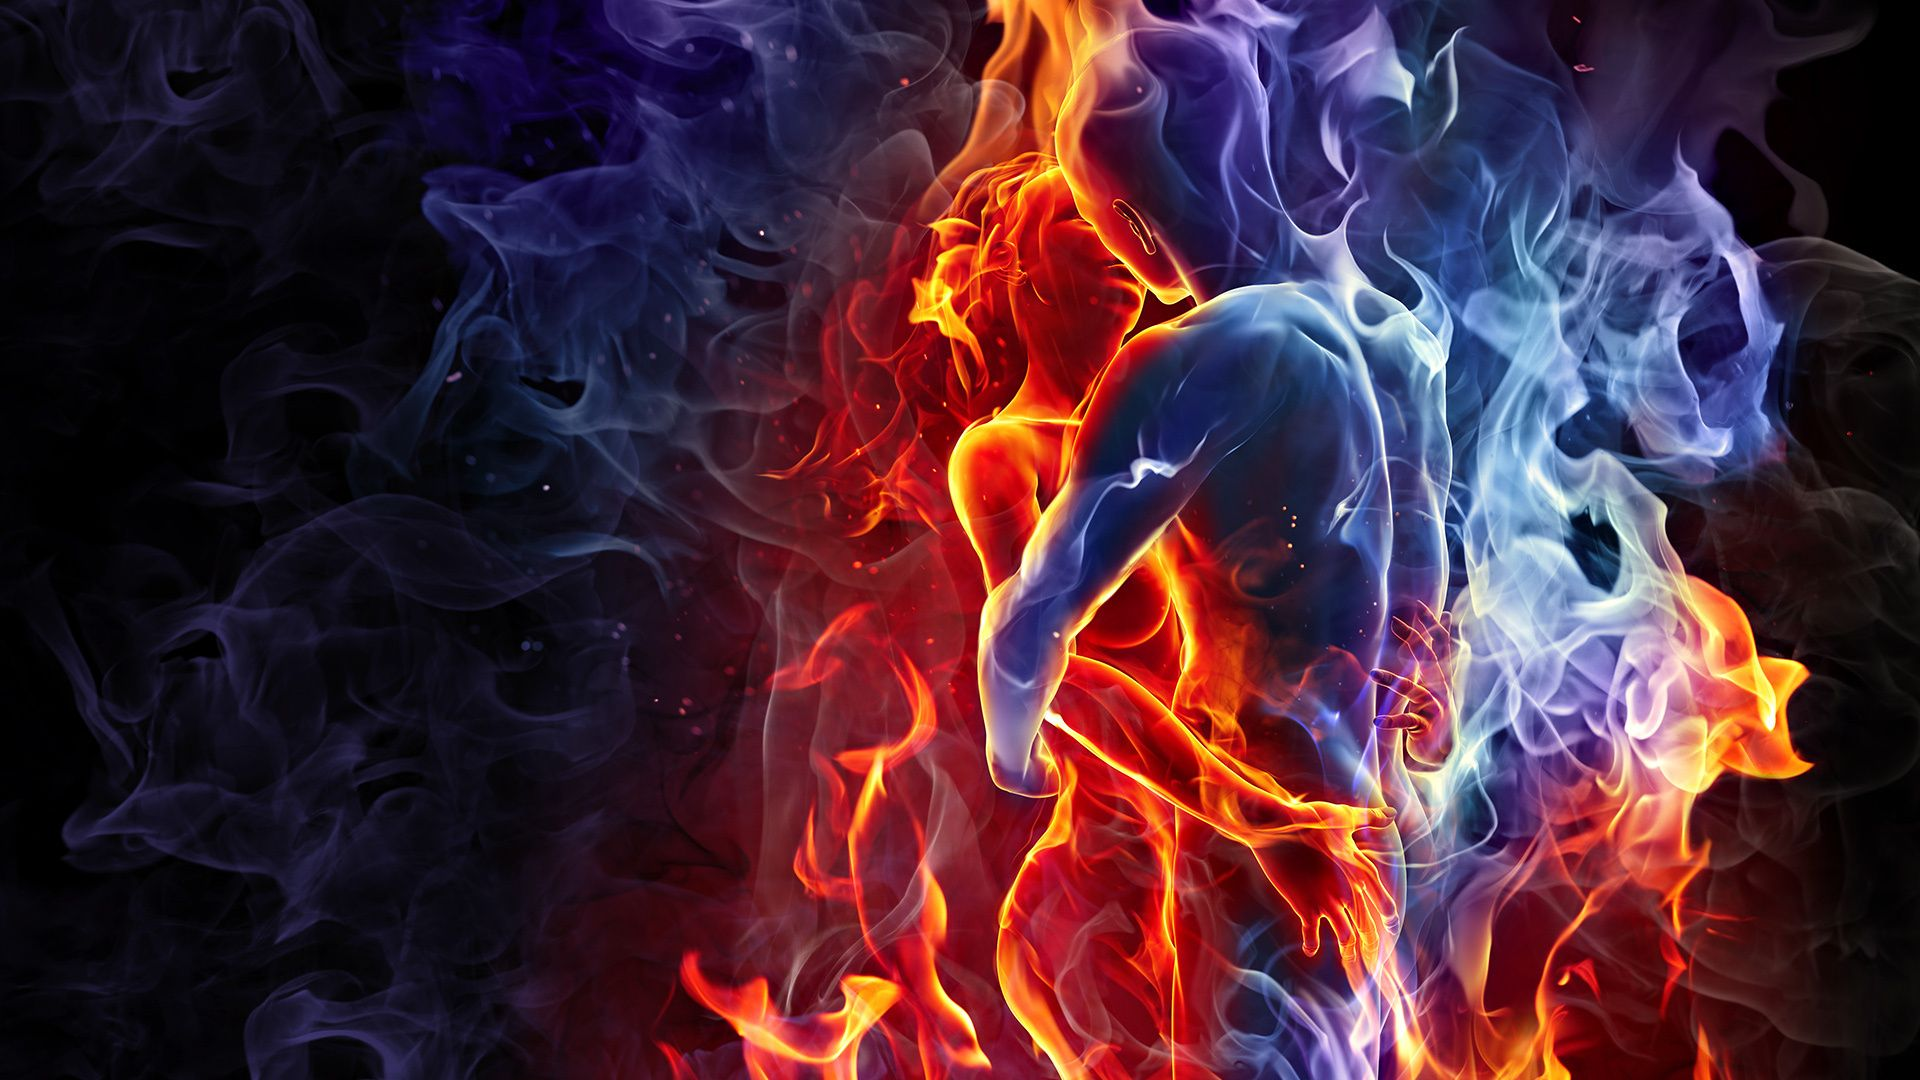 Love The Fire And Ice Photo, Beautiful Images Of